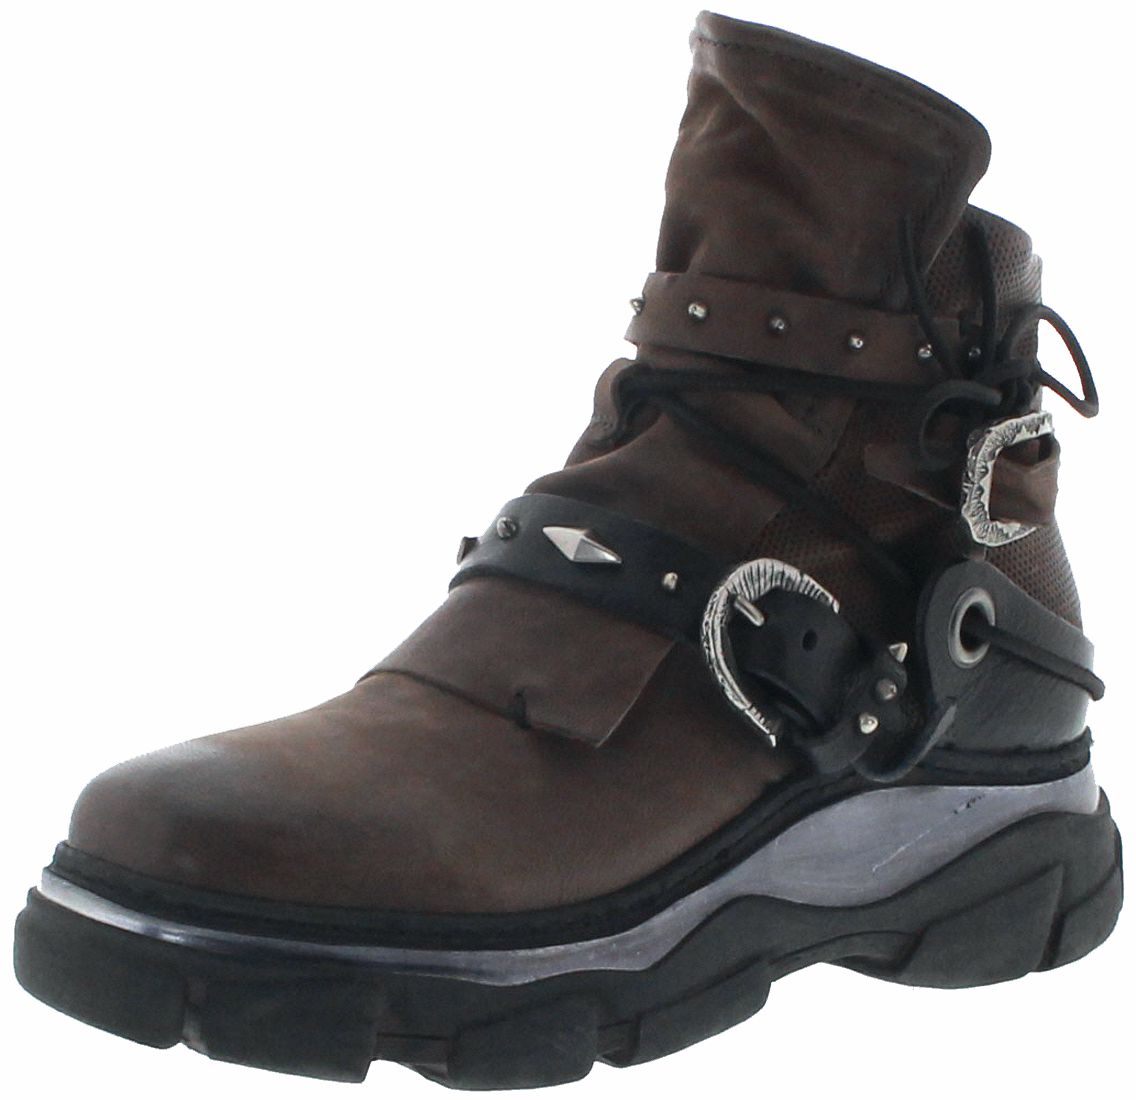 A.S.98 587202 Fango Ladies Laced Boots - brown